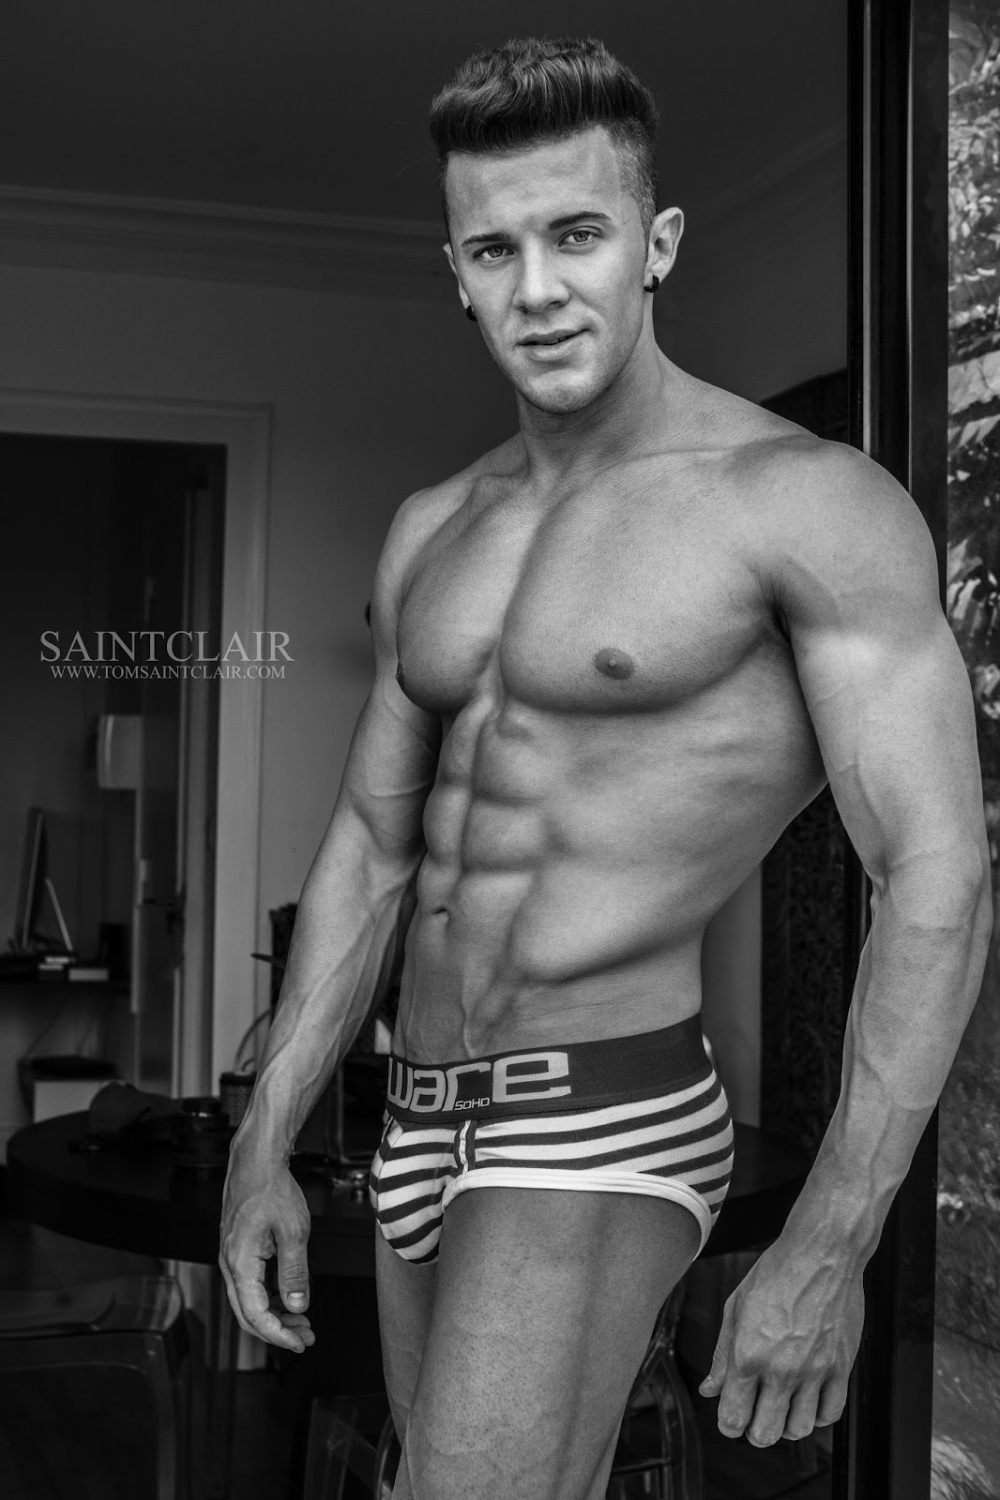 Nicolas Jordy by Tom Saint Clair 3